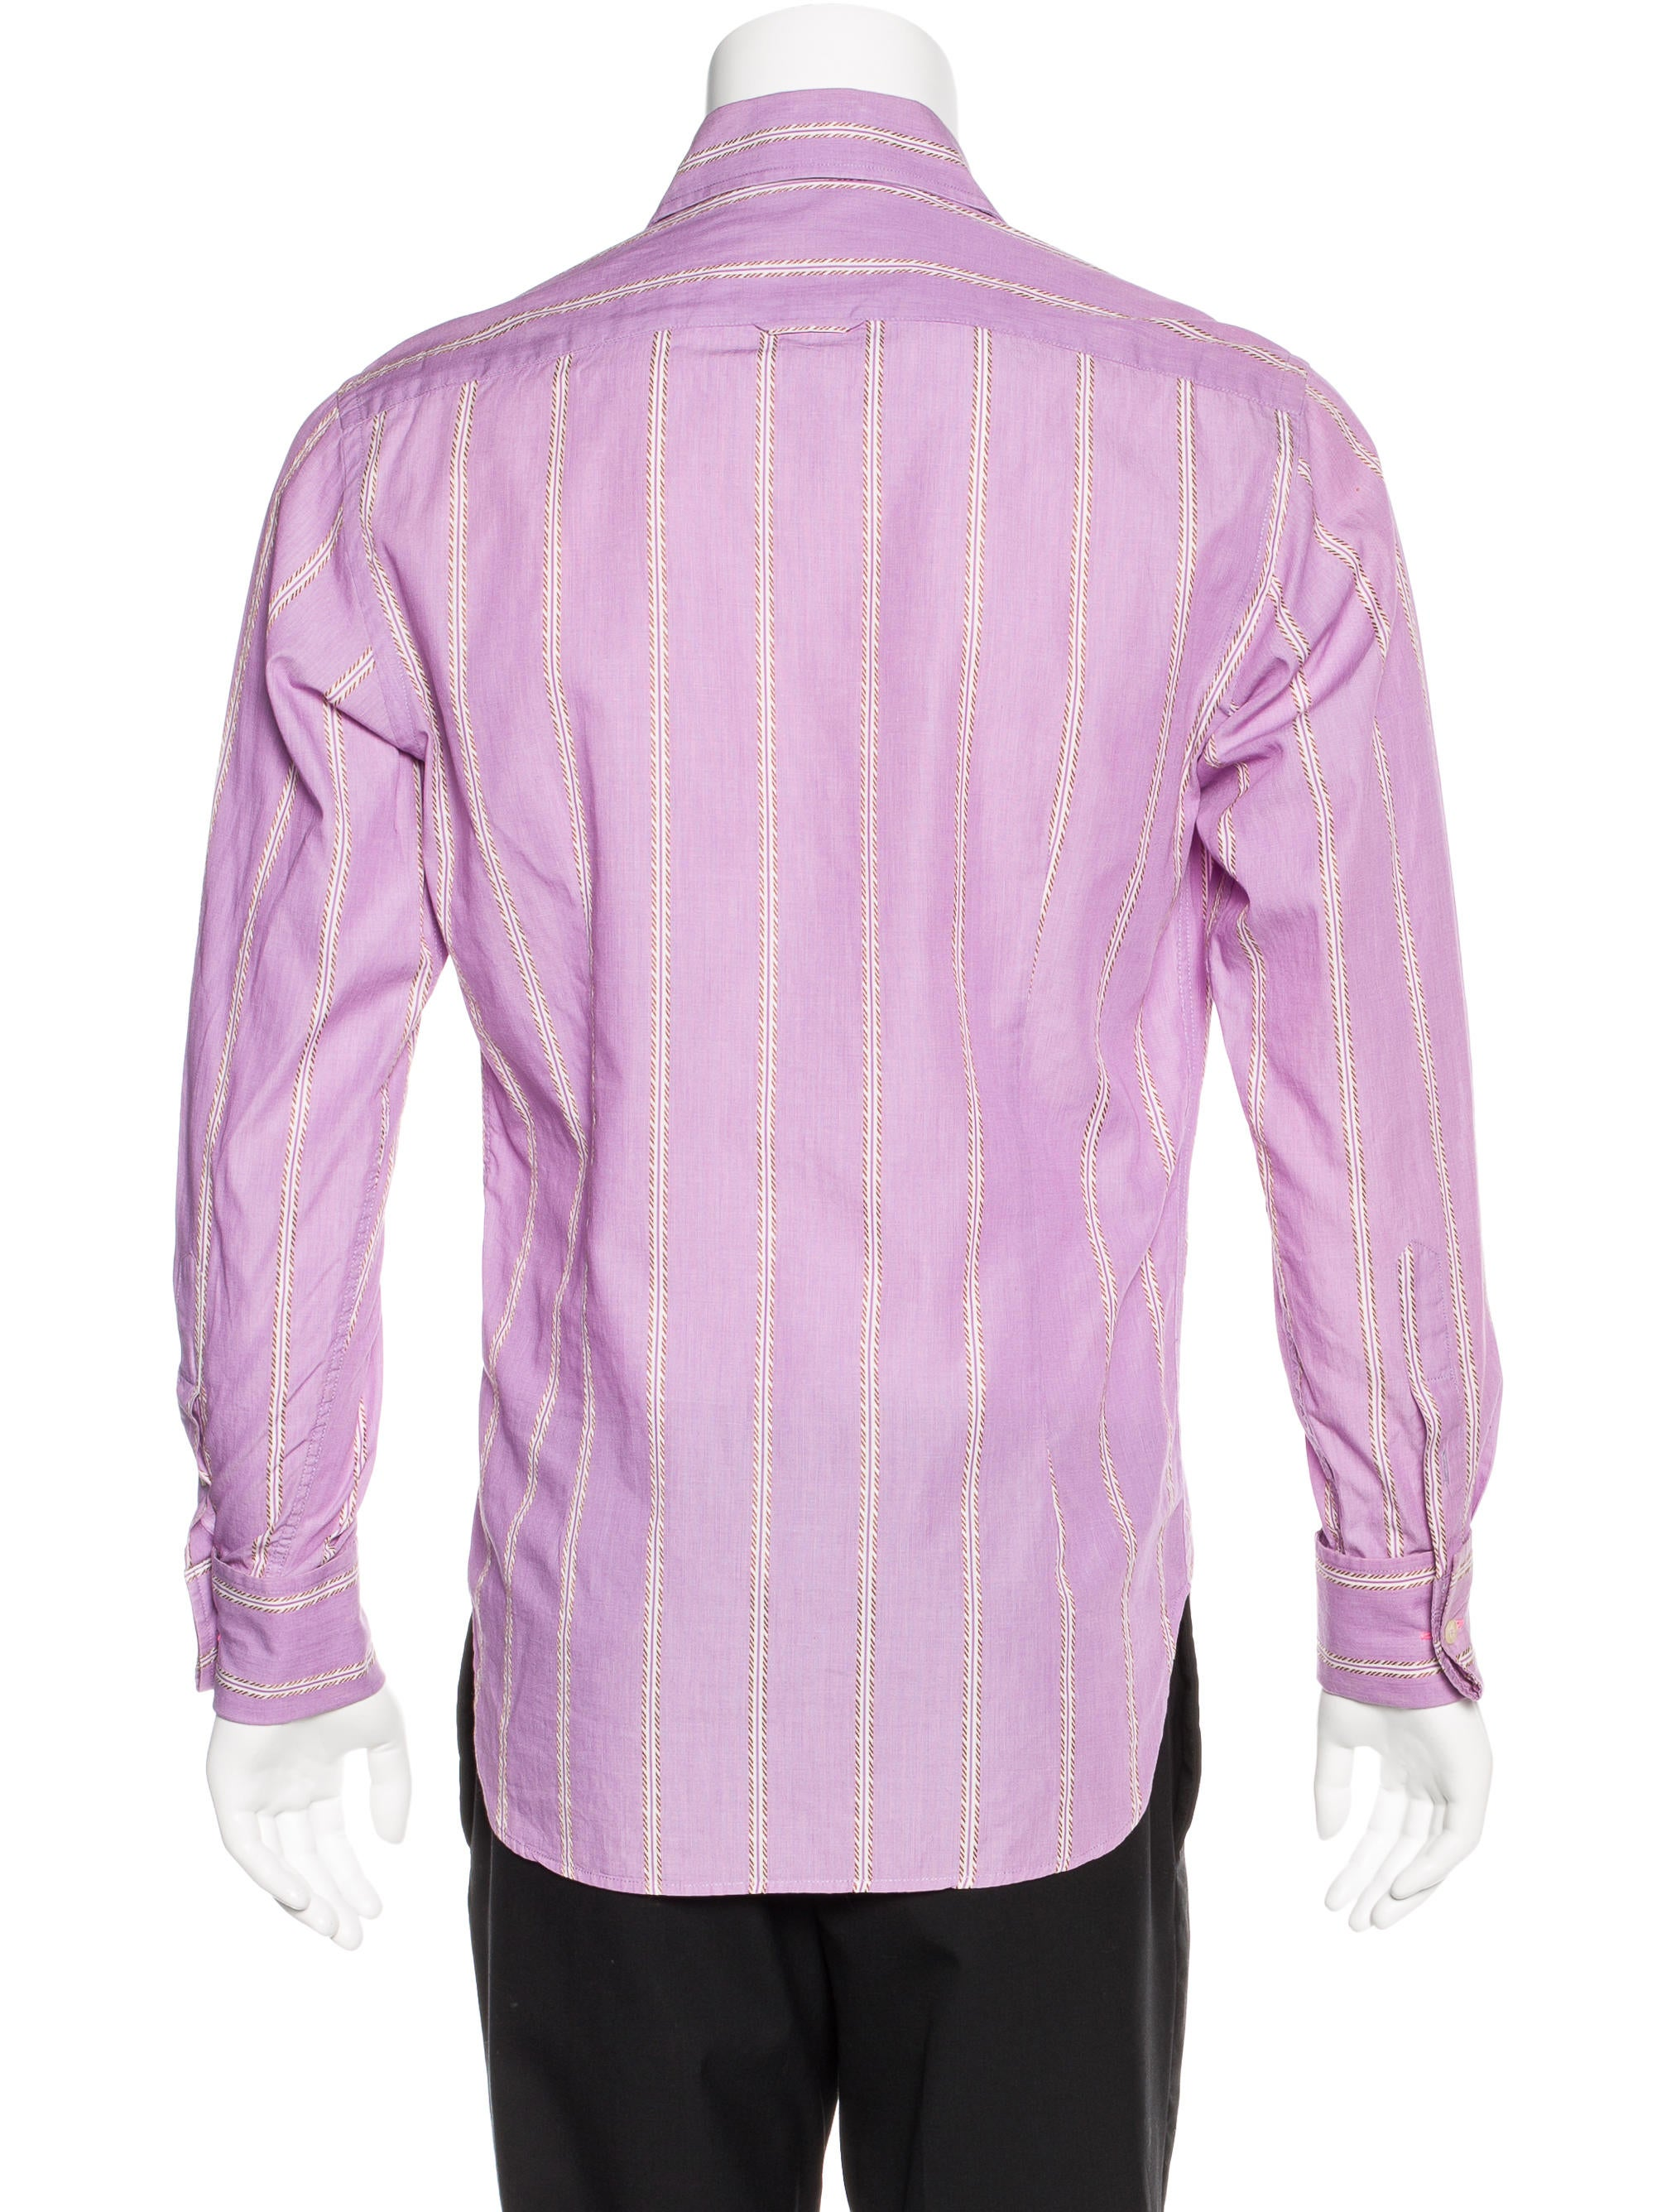 Ps by paul smith striped french cuff shirt clothing for French cuff dress shirts for sale